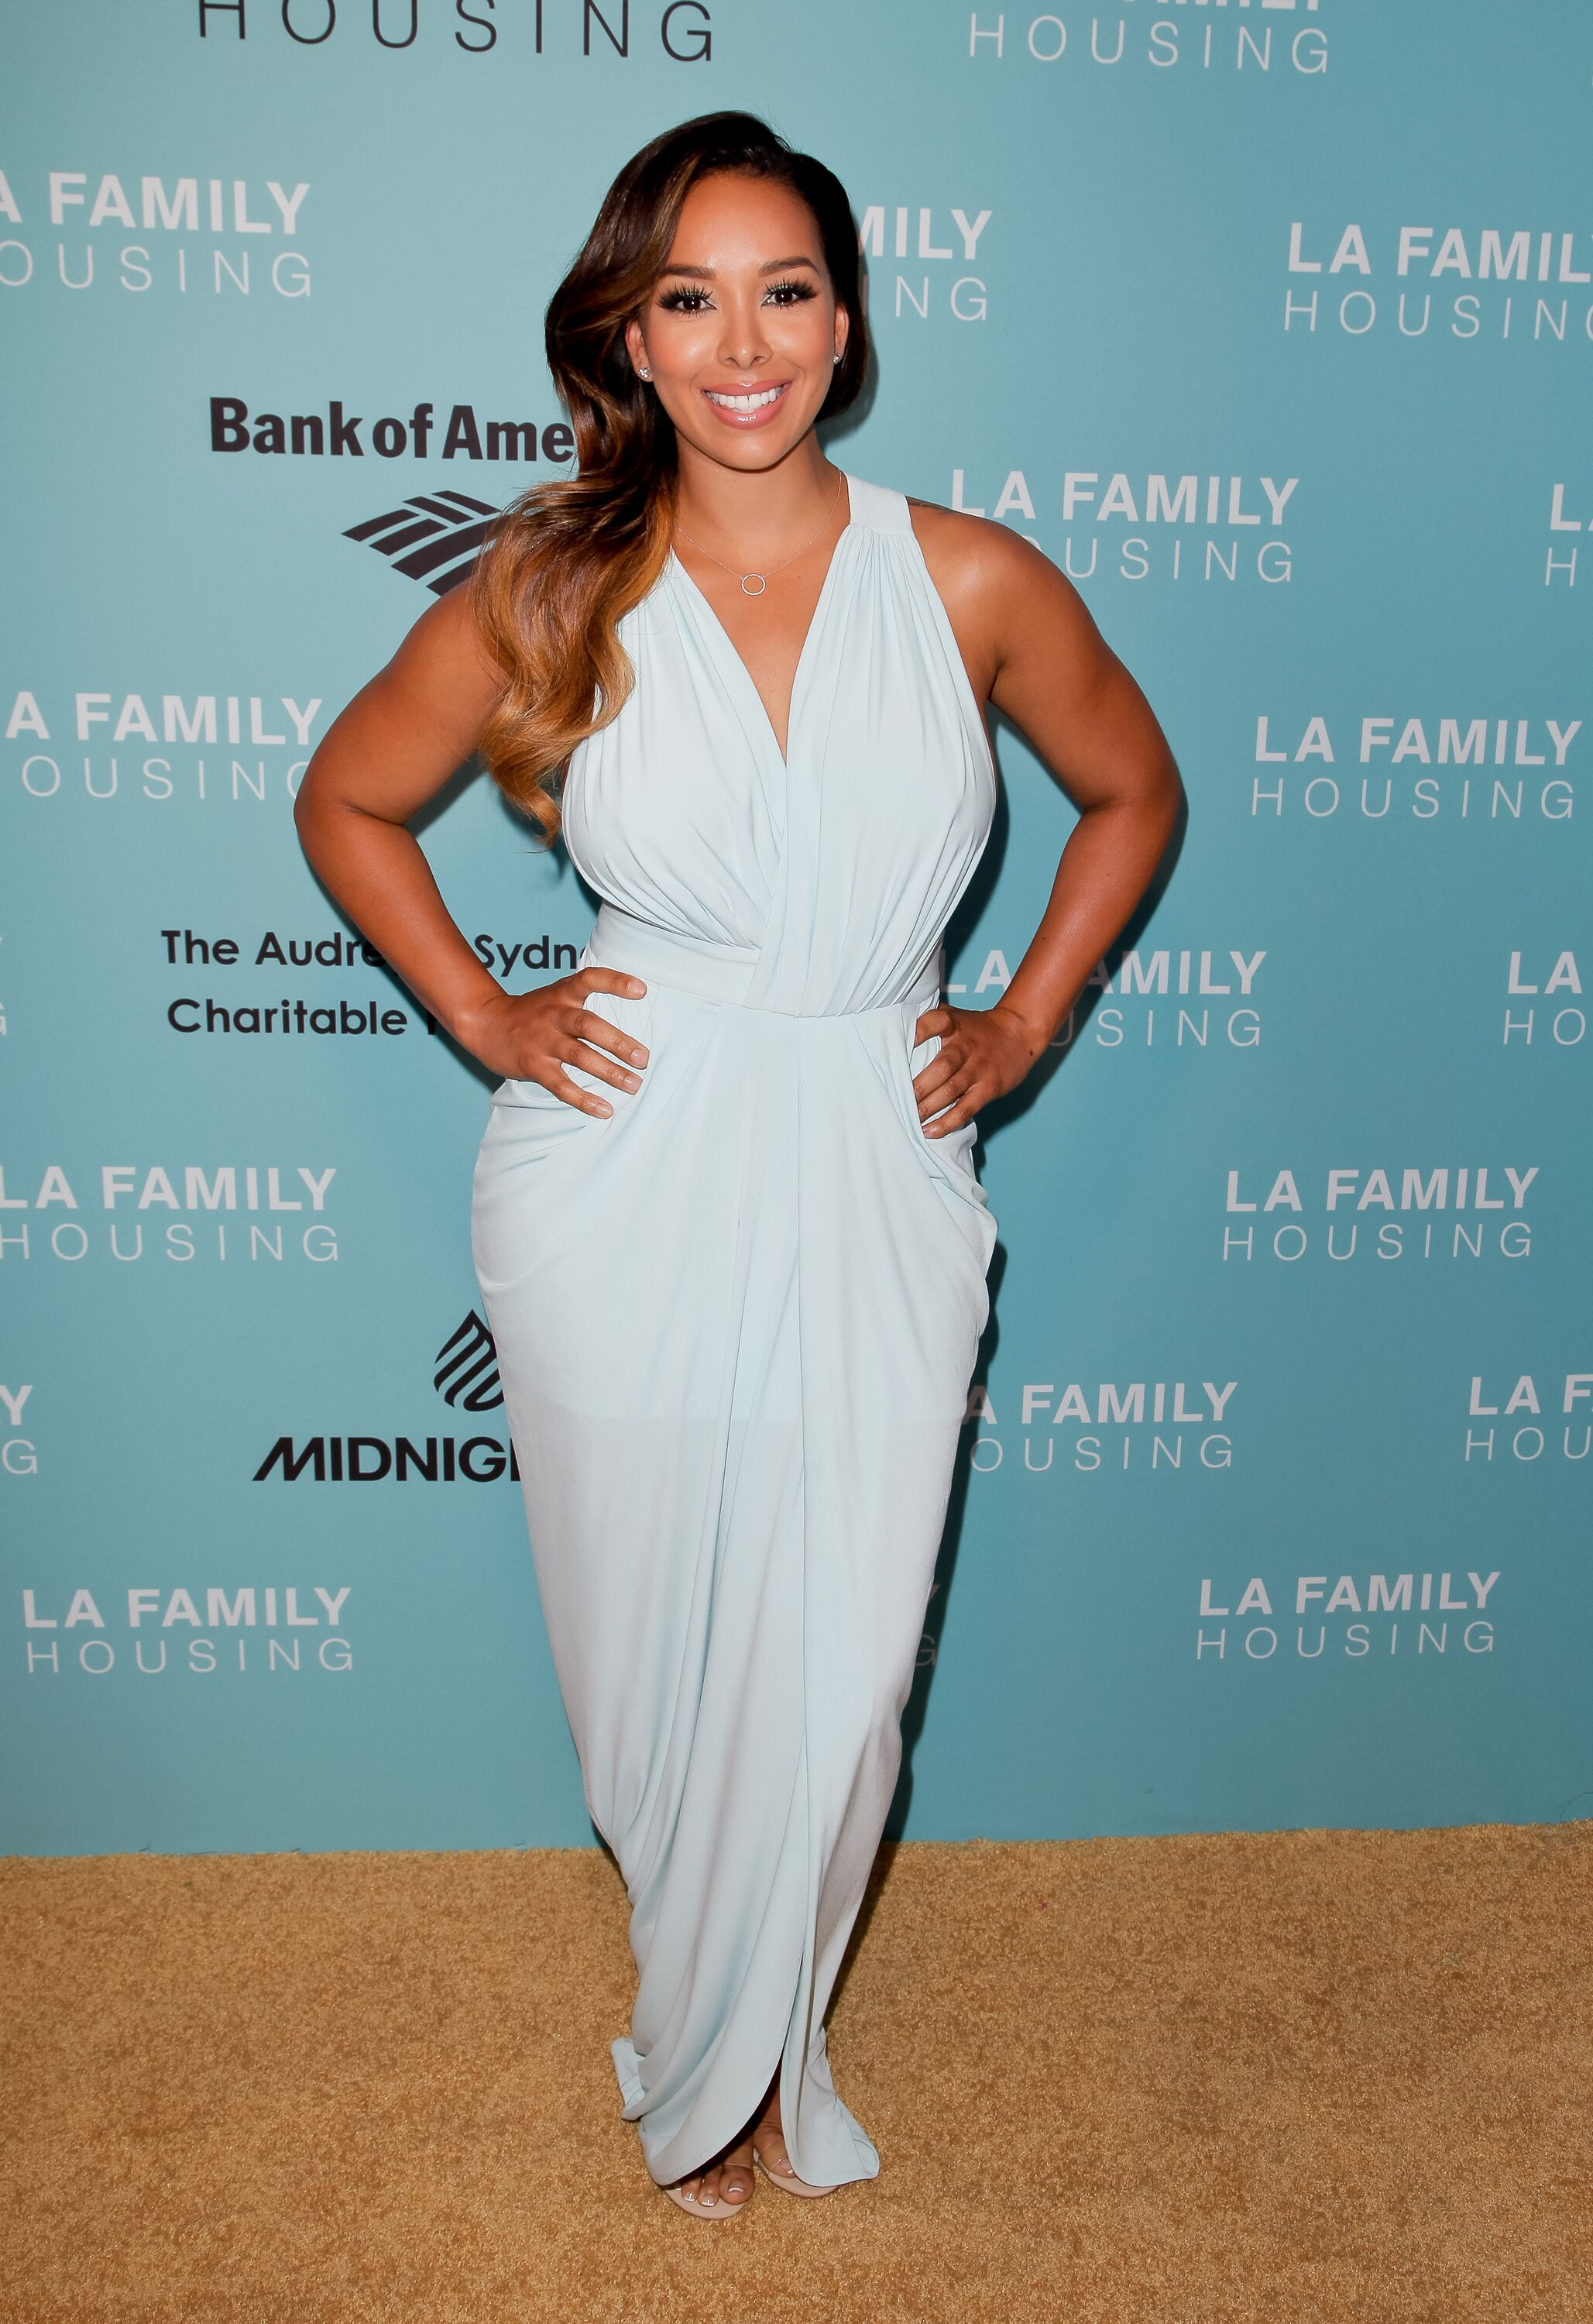 Gloria Govan attends the LA Family Housing 2017 Awards on April 27, 2017 in West Hollywood, California | Photo: Getty Images